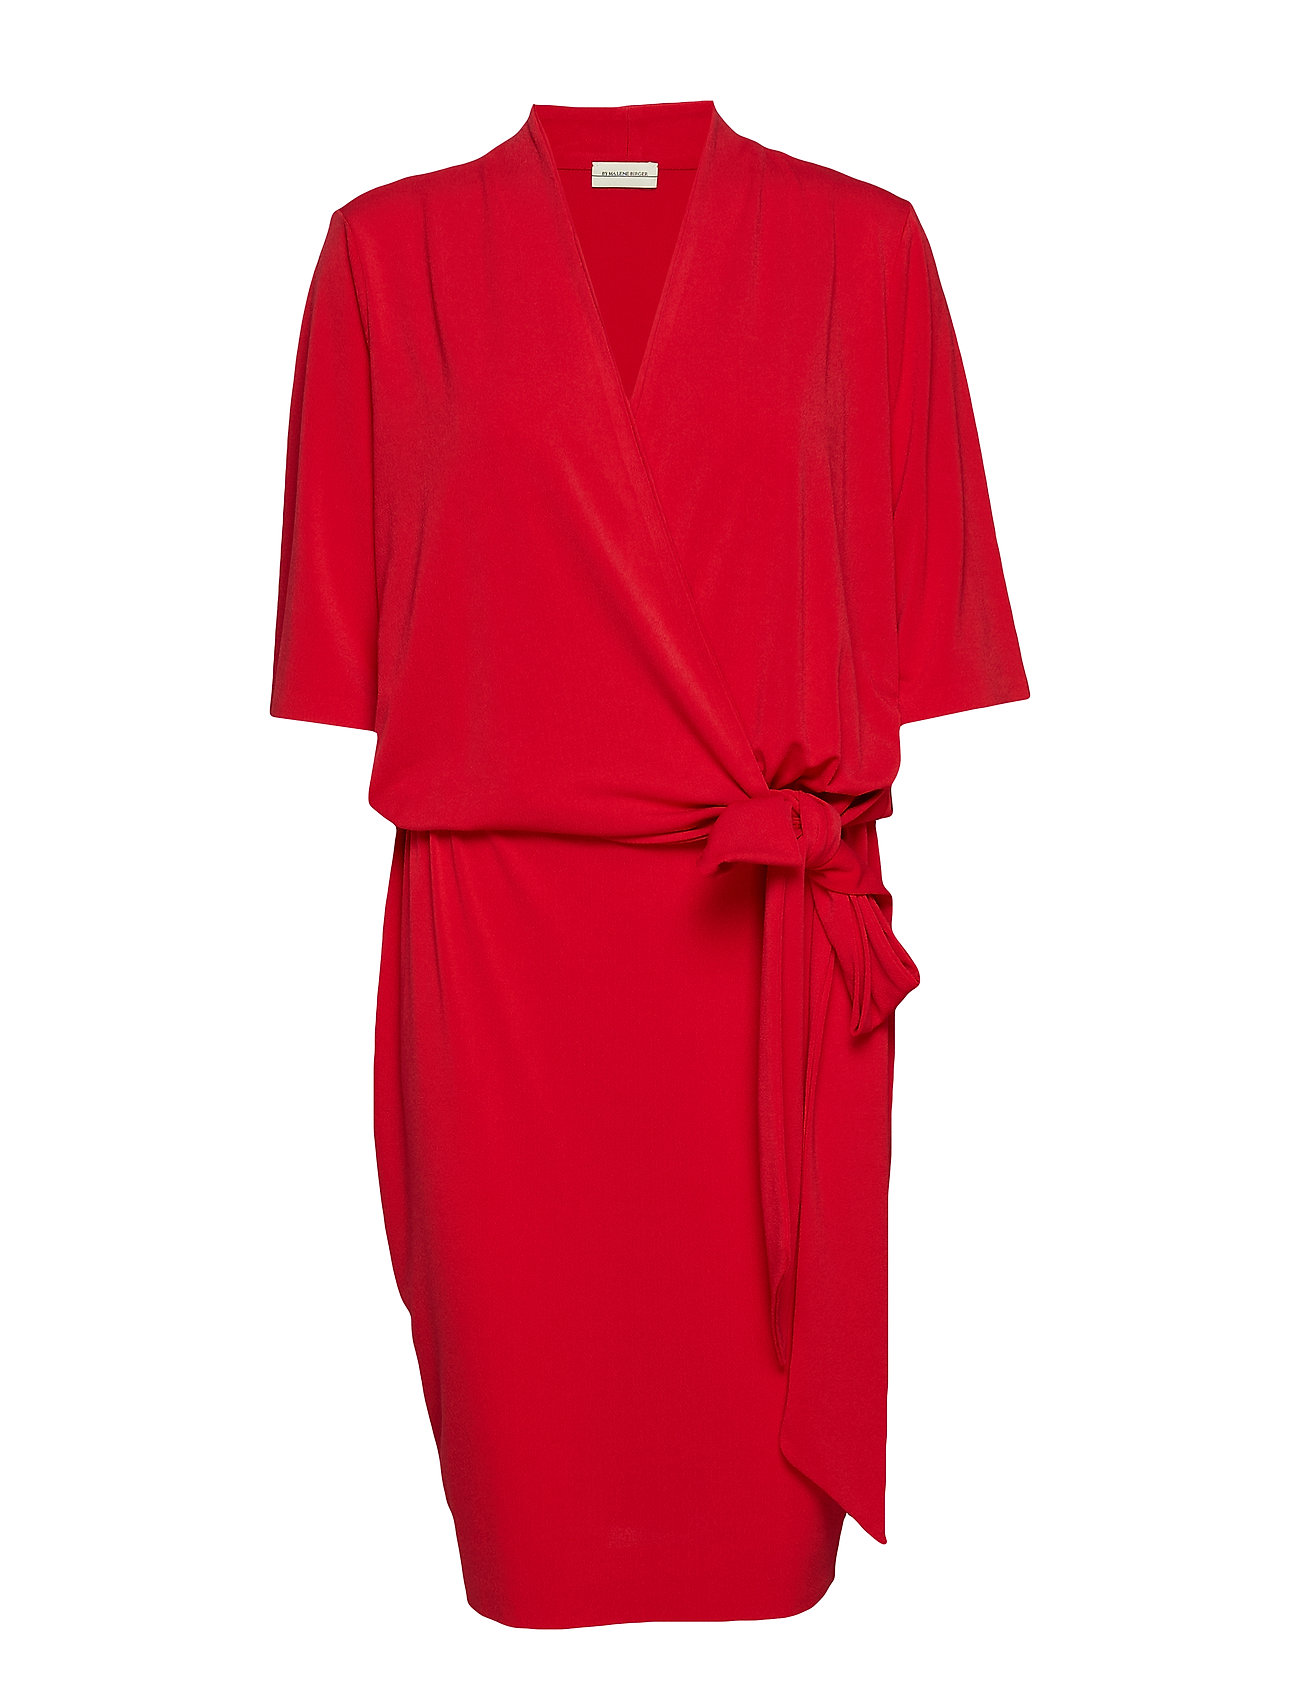 0b4fb8146744 Qizi (Bright Red) (1699 kr) - By Malene Birger -